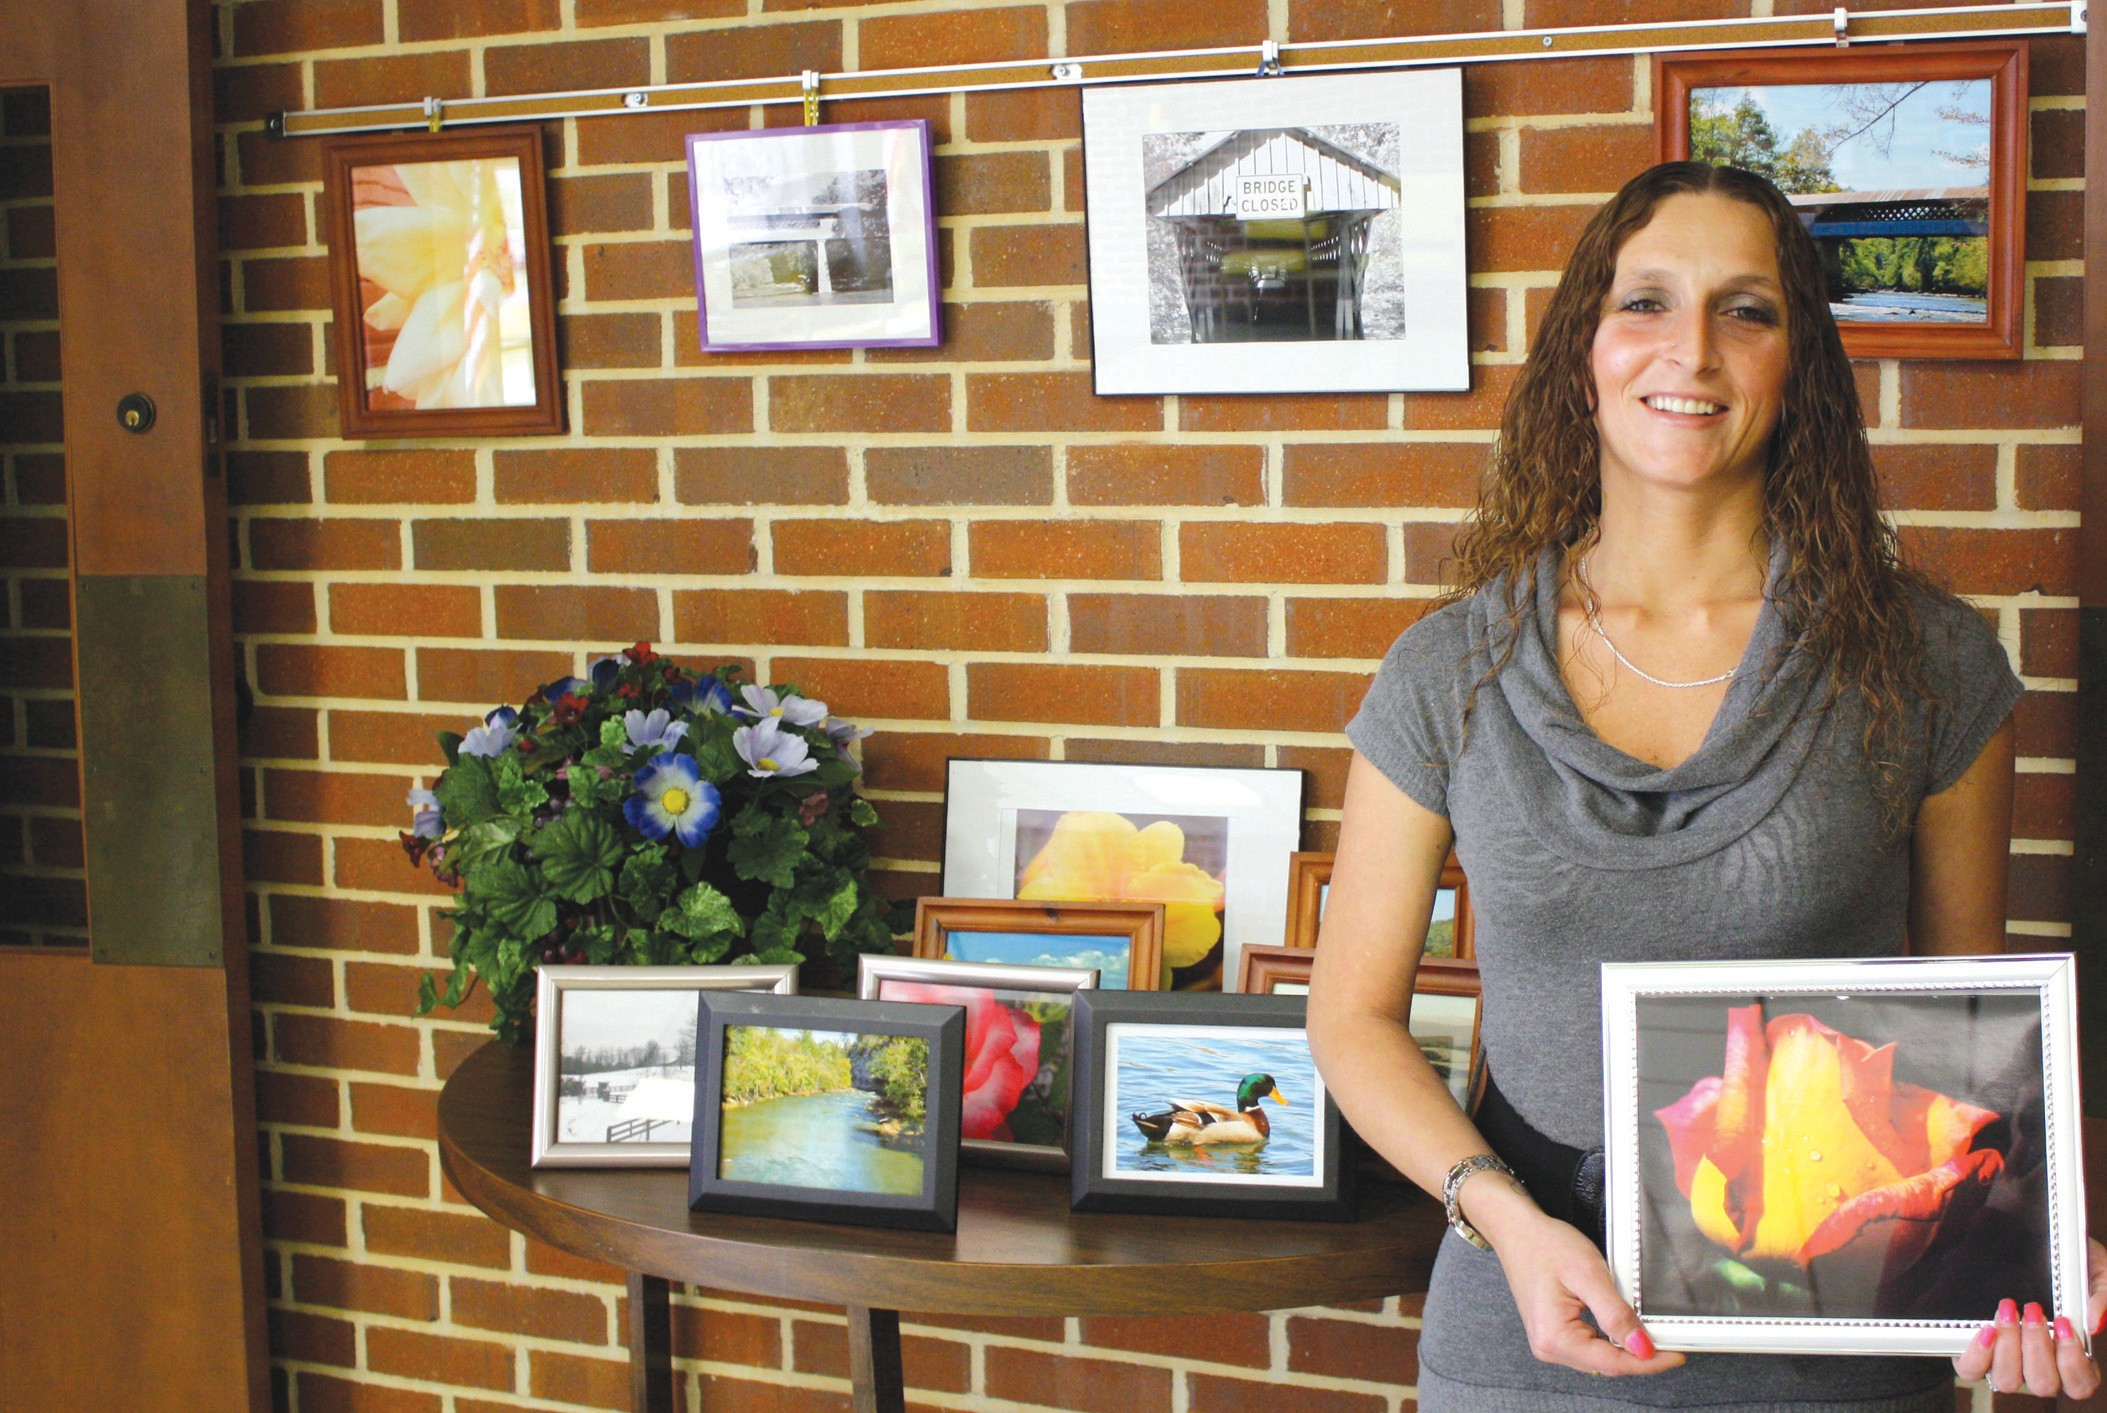 Regina Fuller photographs Blount County nature and was chosen as a featured artist by the Blount County Memorial Museum.